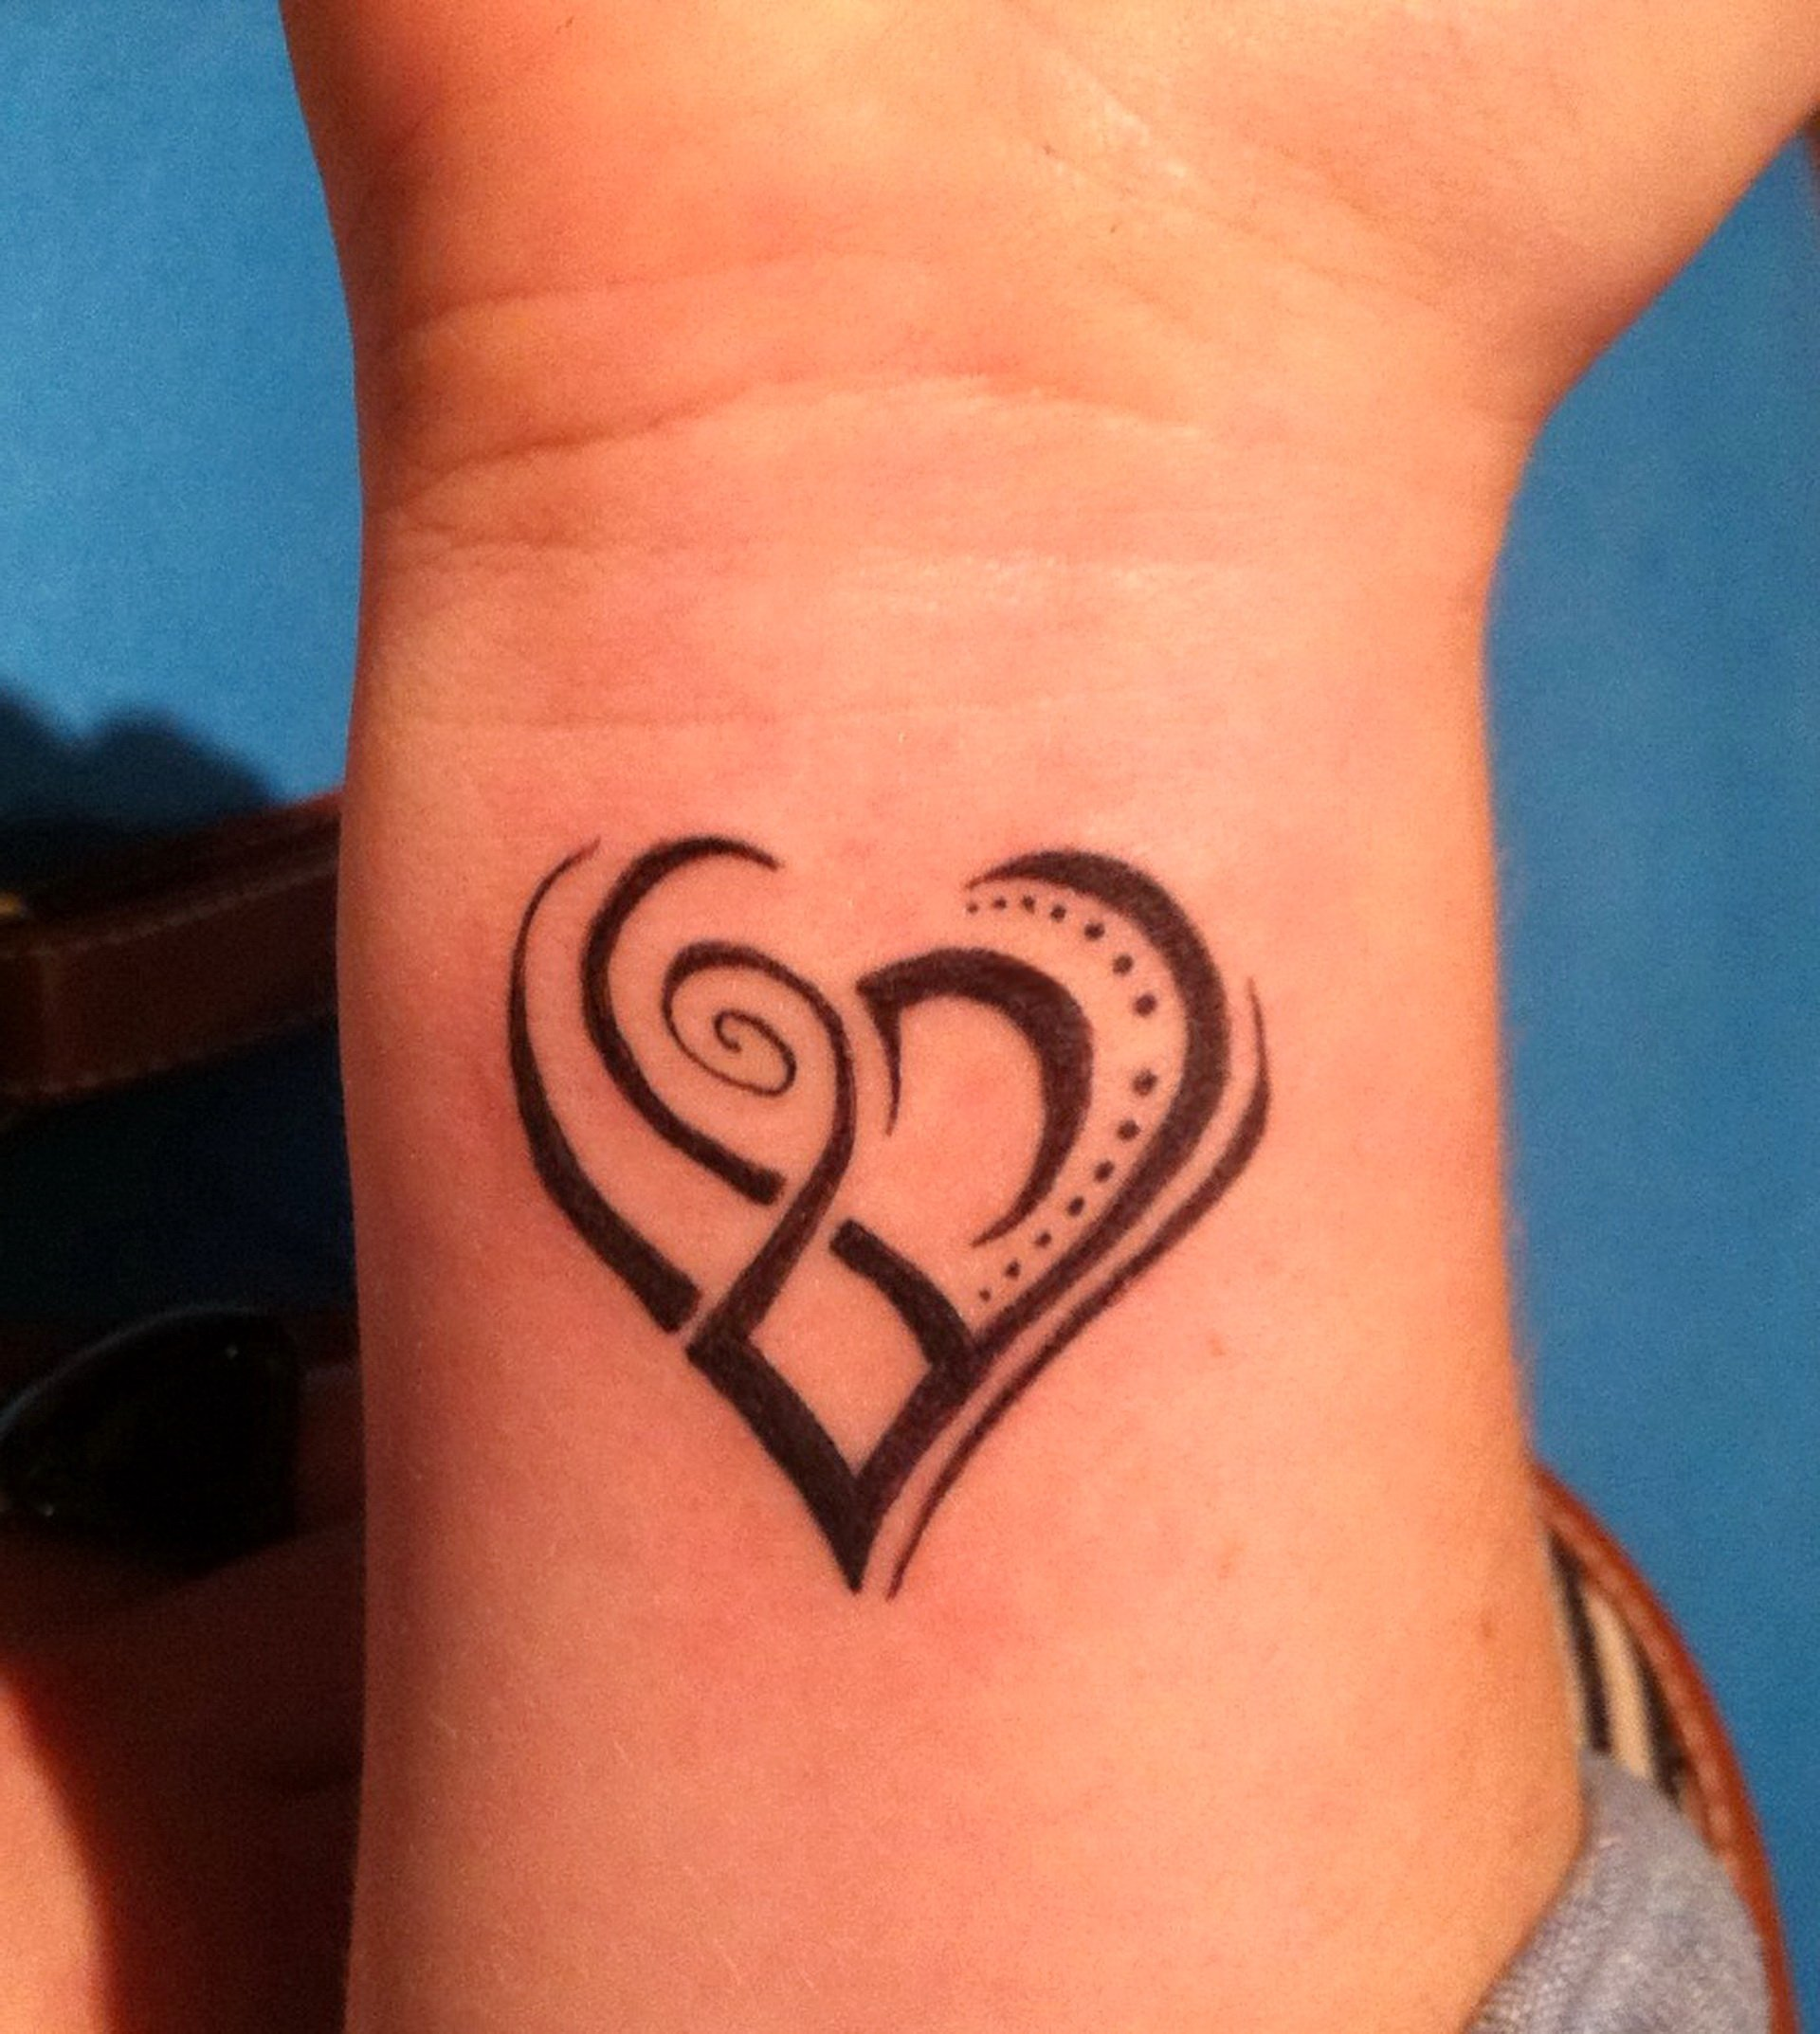 27 Wrist Tattoos Designs For Girls